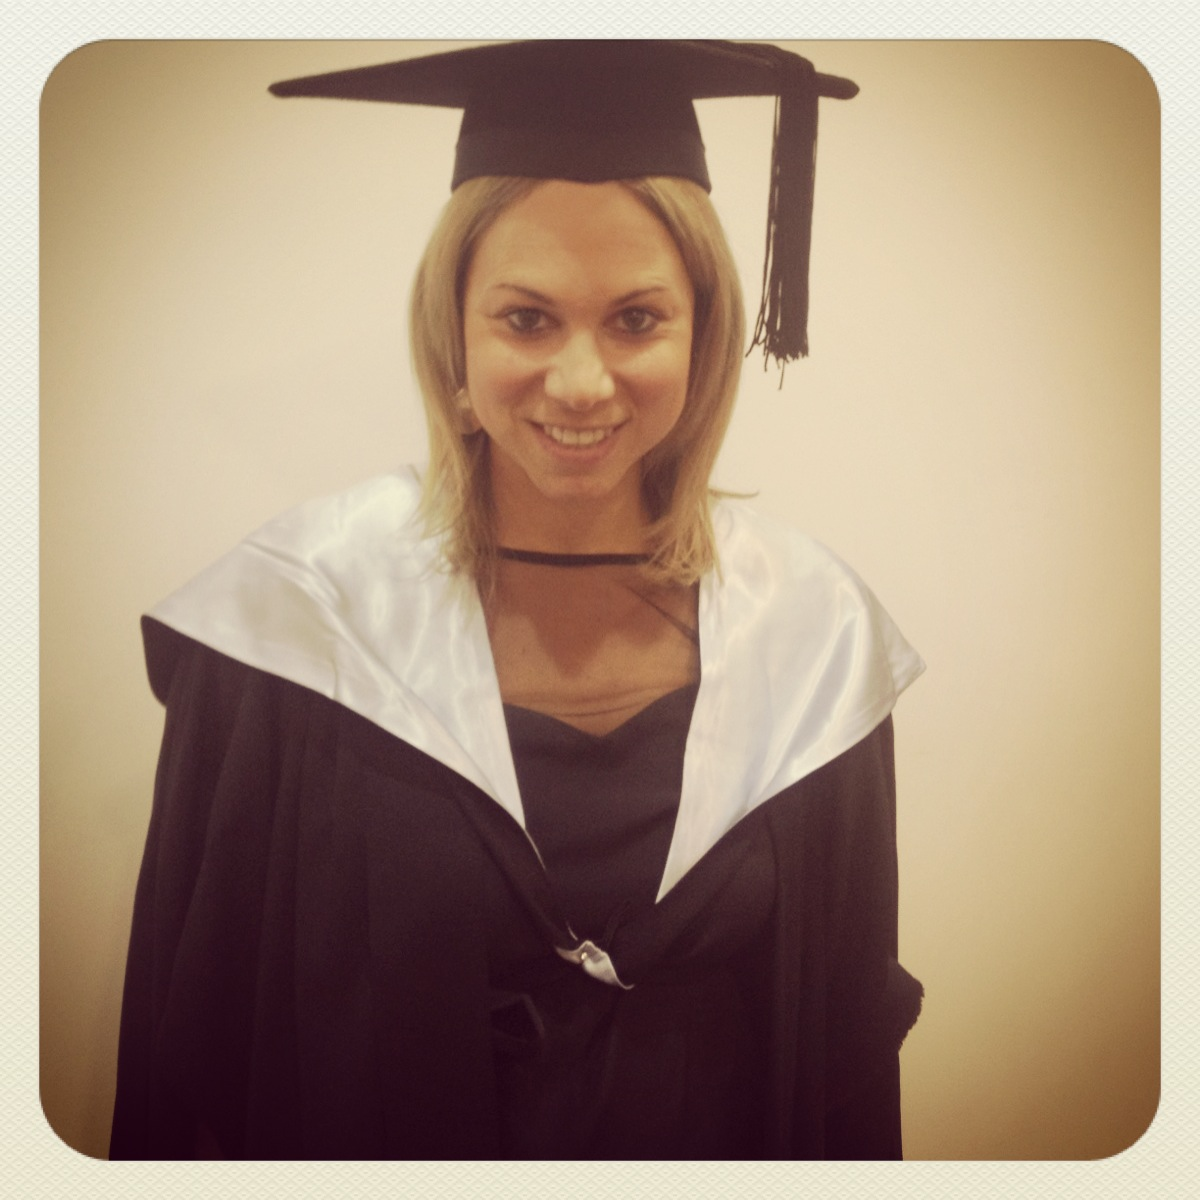 Graduating with my Masters in Entrepreneurship and Innovation after years of study!